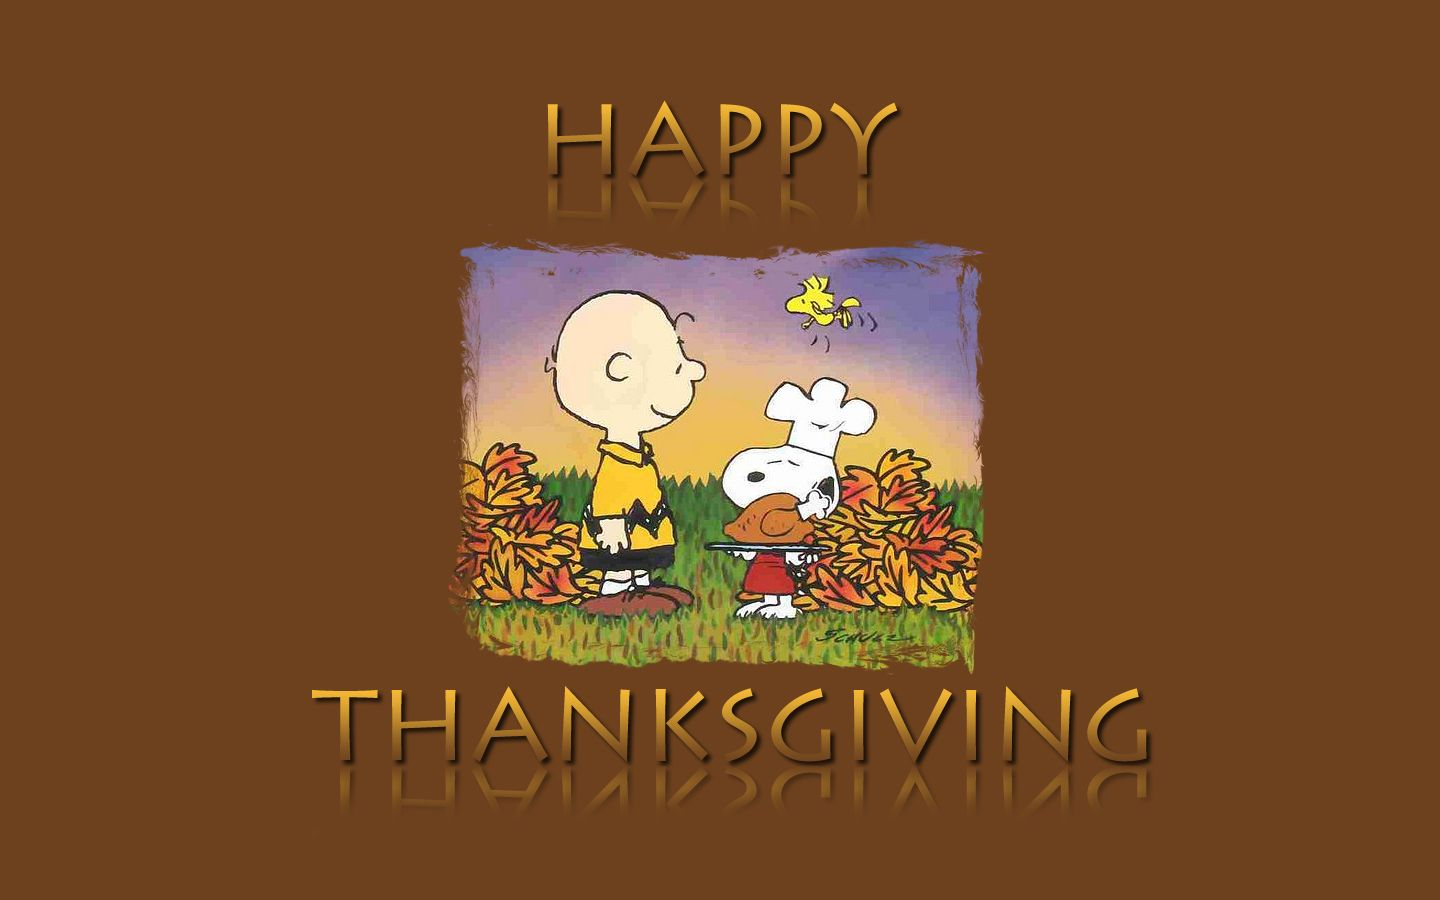 Wallpaper For Computer For Thanksgiving Snoopy Peanuts Desktop Wallpaper Picture Wallp Happy Thanksgiving Wallpaper Thanksgiving Snoopy Peanuts Wallpaper